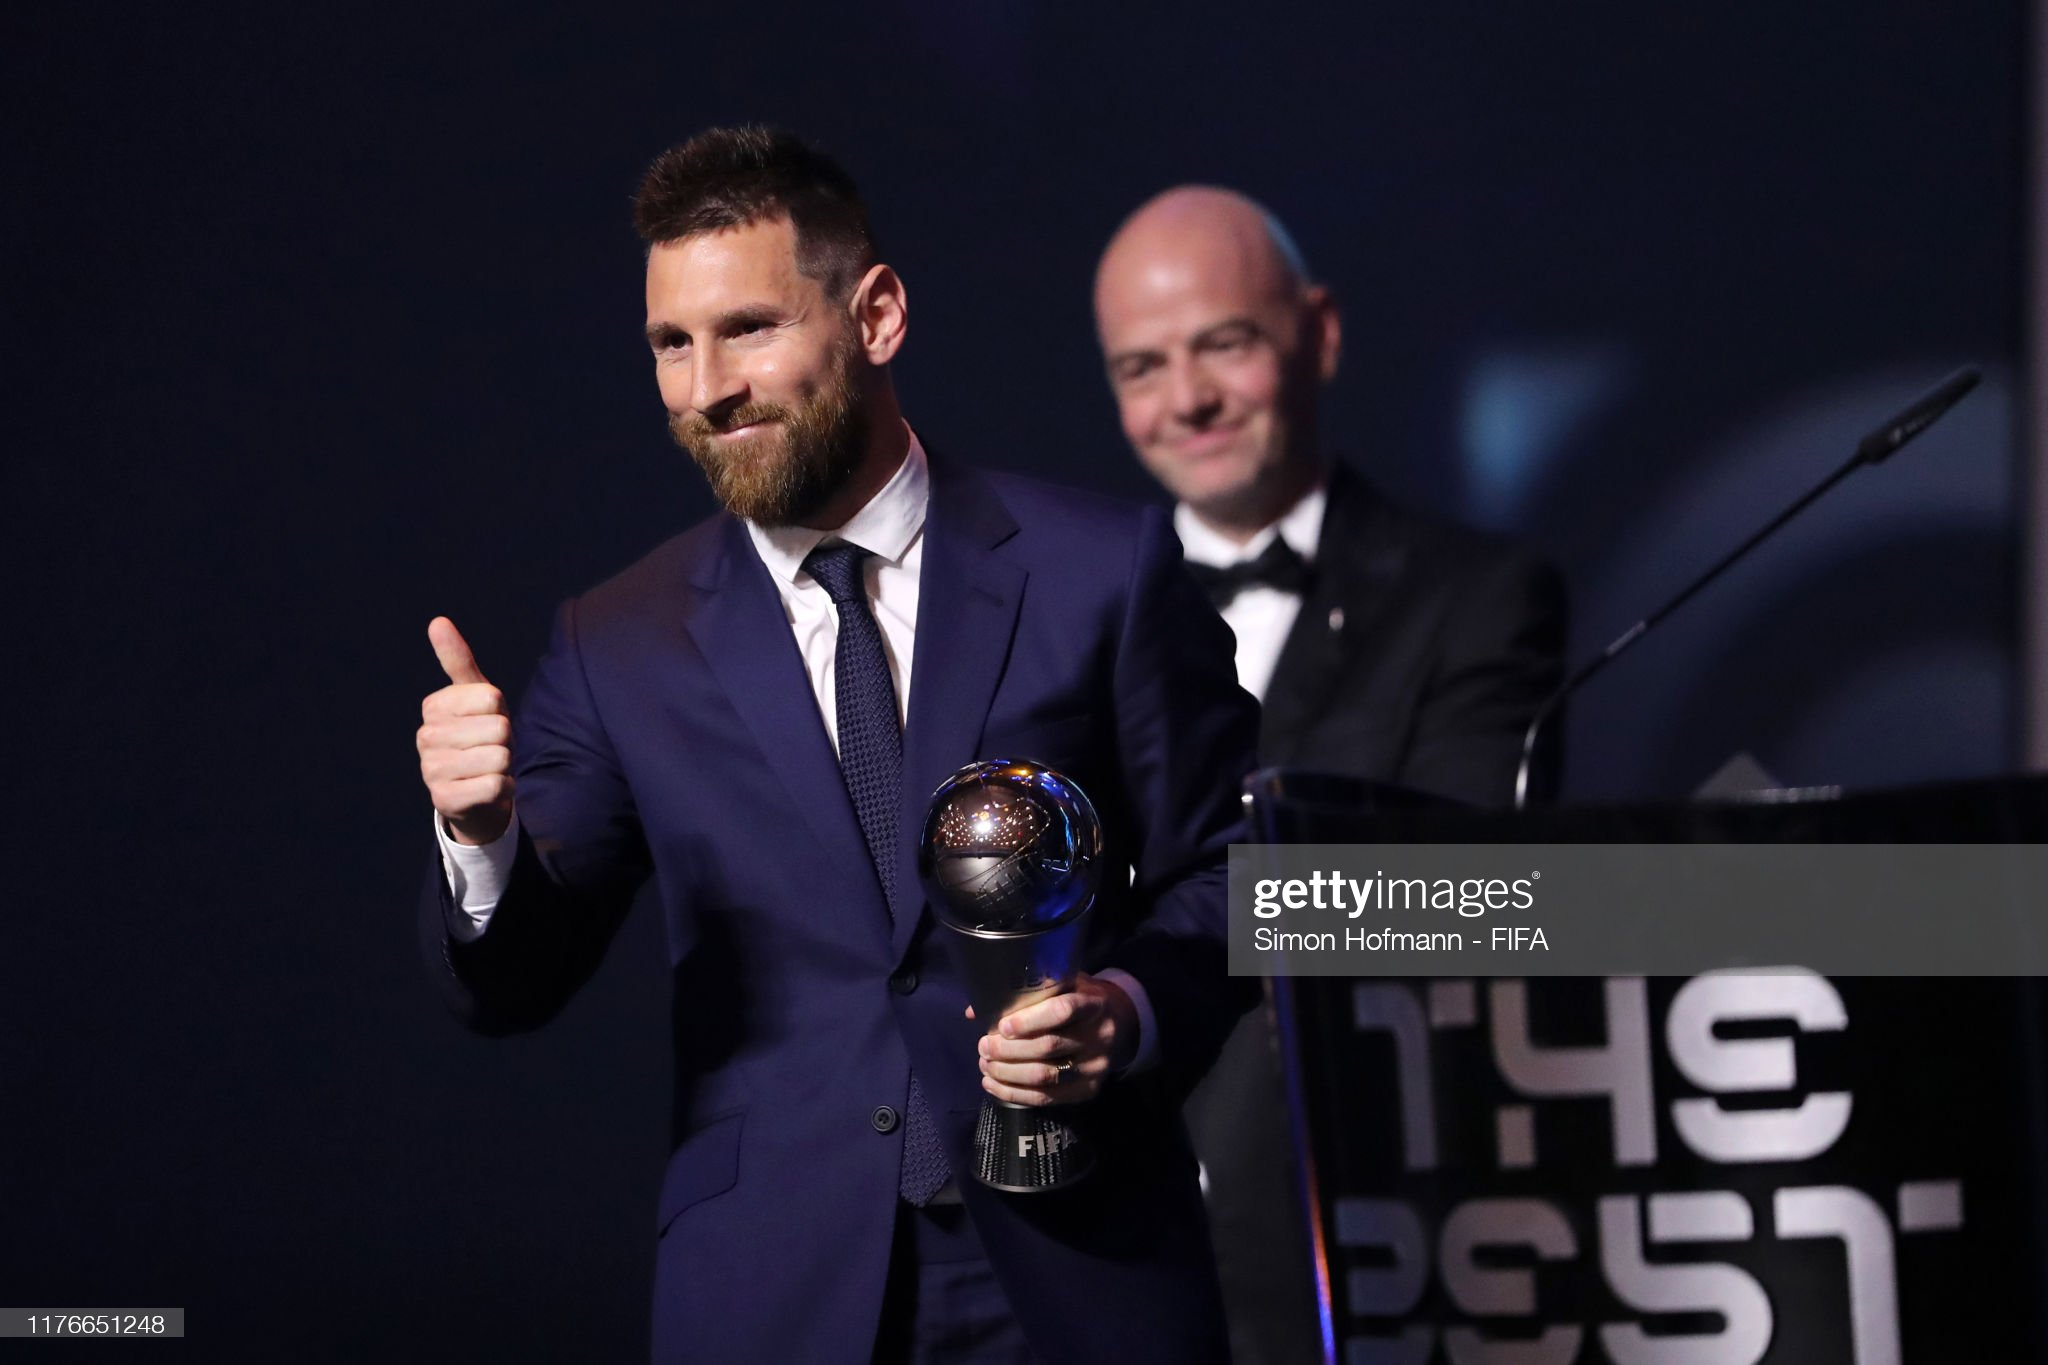 The Best FIFA Football Awards 2019 The-best-fifa-mens-player-award-winnrer-lionel-messi-of-fc-barcelona-picture-id1176651248?s=2048x2048